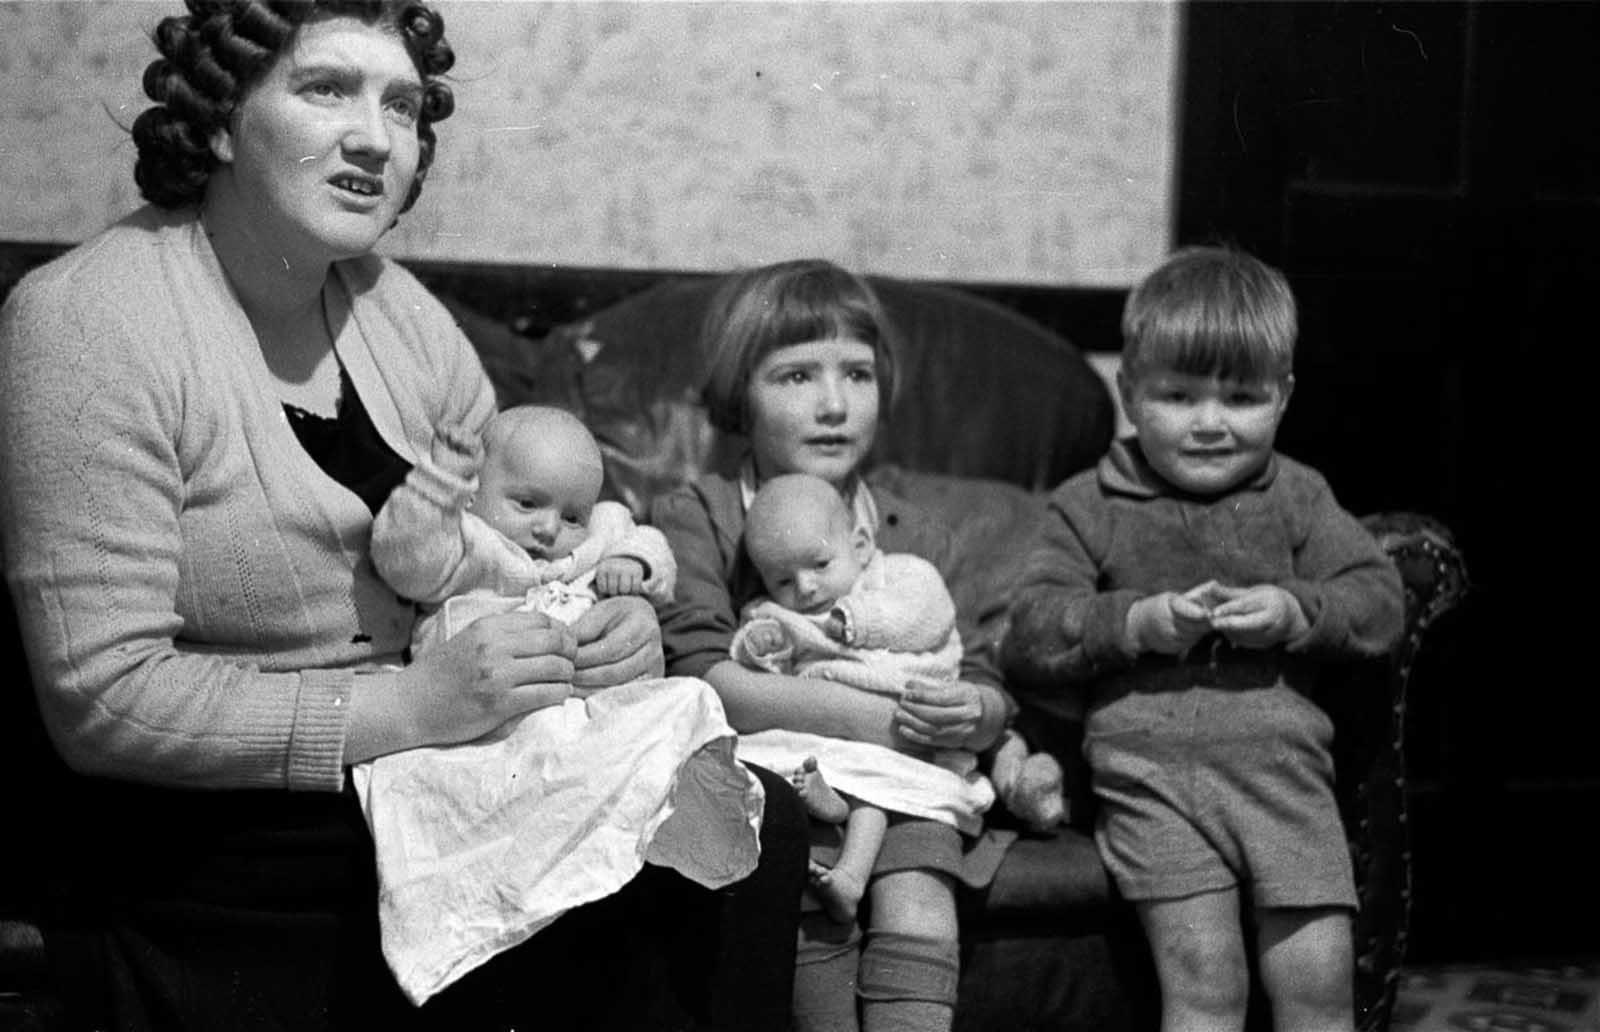 27-year-old Briton Ivy Bourne, mother of triplets and twins. Her mother had a total of 22 children, including one set of triplets and four sets of twins, 1953.